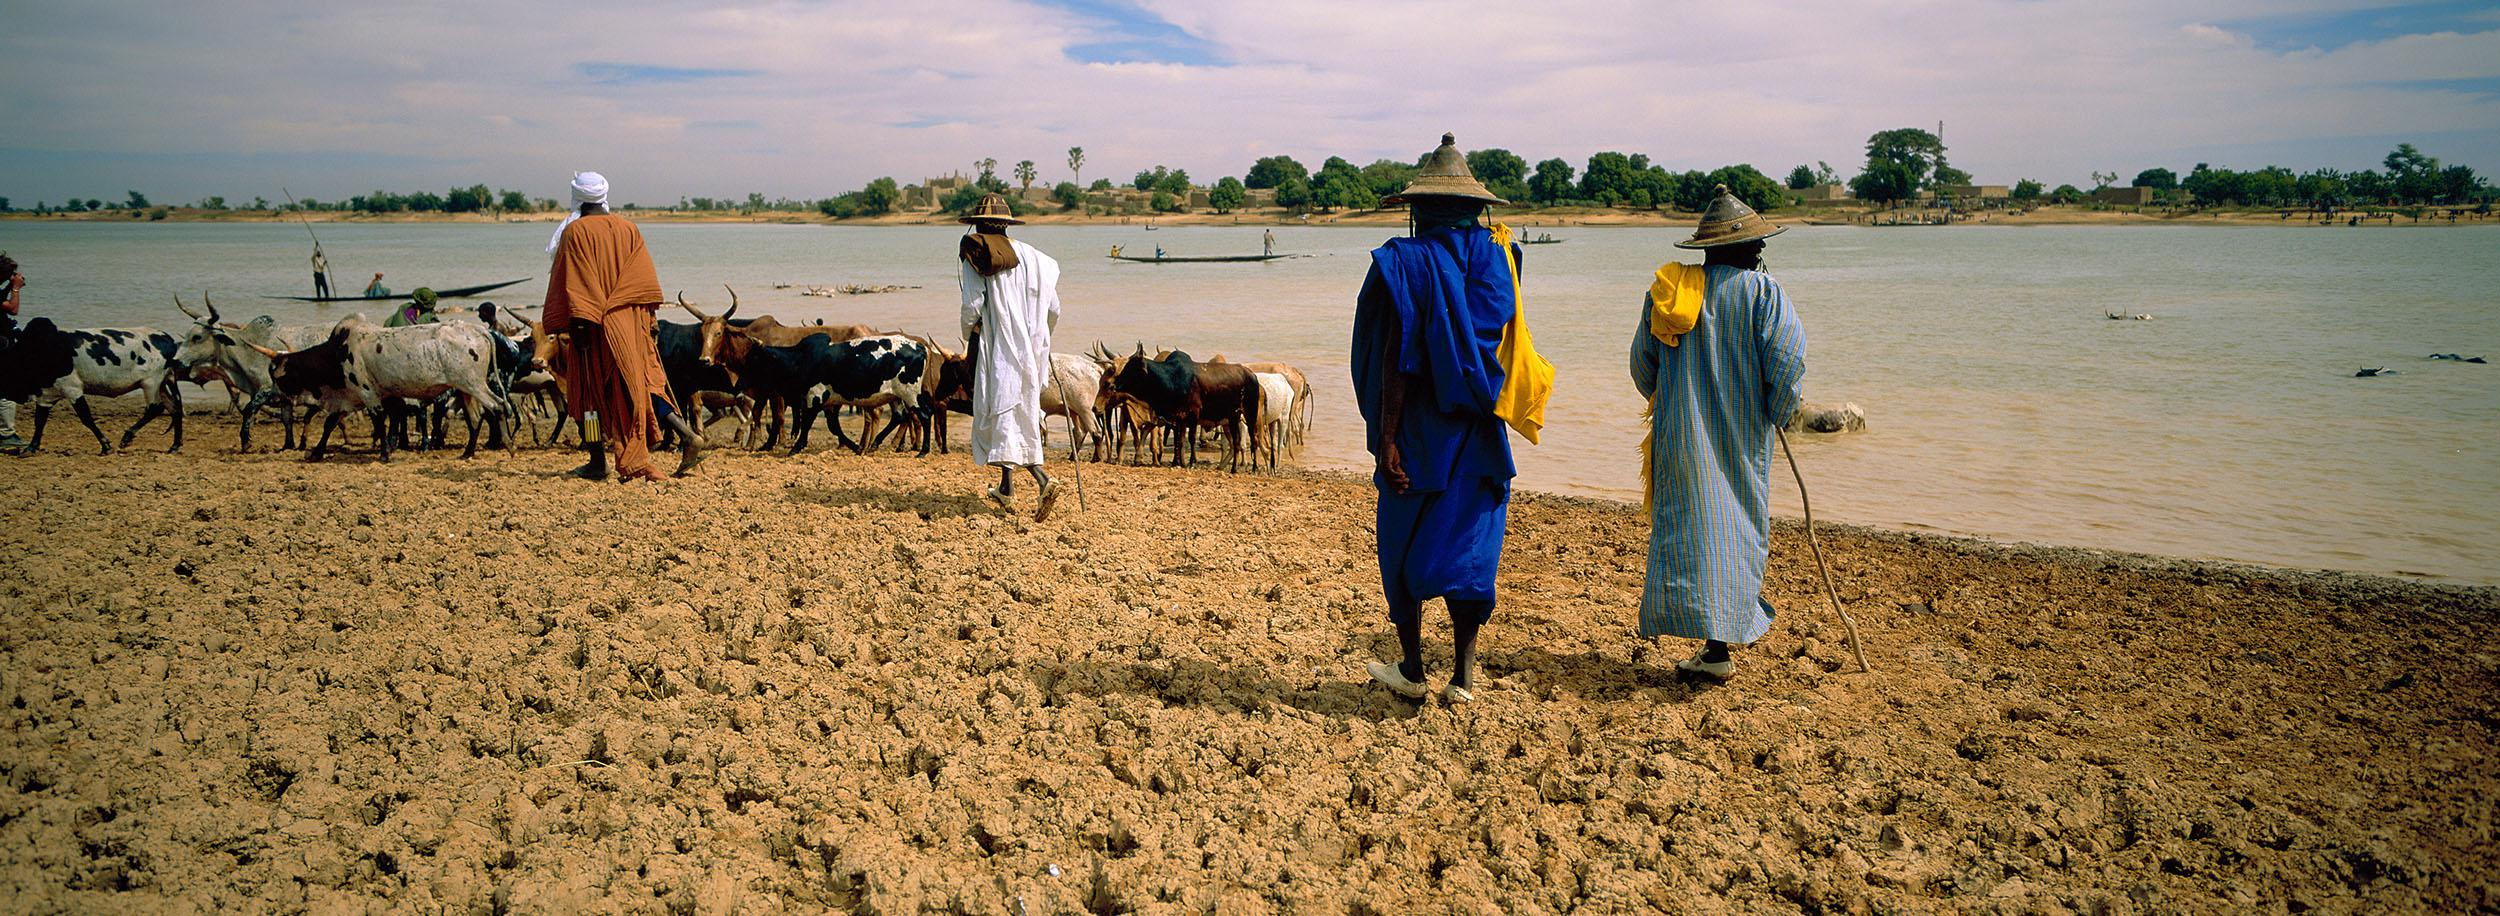 Peuhl animal herders waiting to cross the Bani River, near Sofara, central Mali.  On August 7, 2018, Dozo militia allegedly detained 11 Peuhl traders as they waited to cross the river to go to Sofara market, and later killed them.